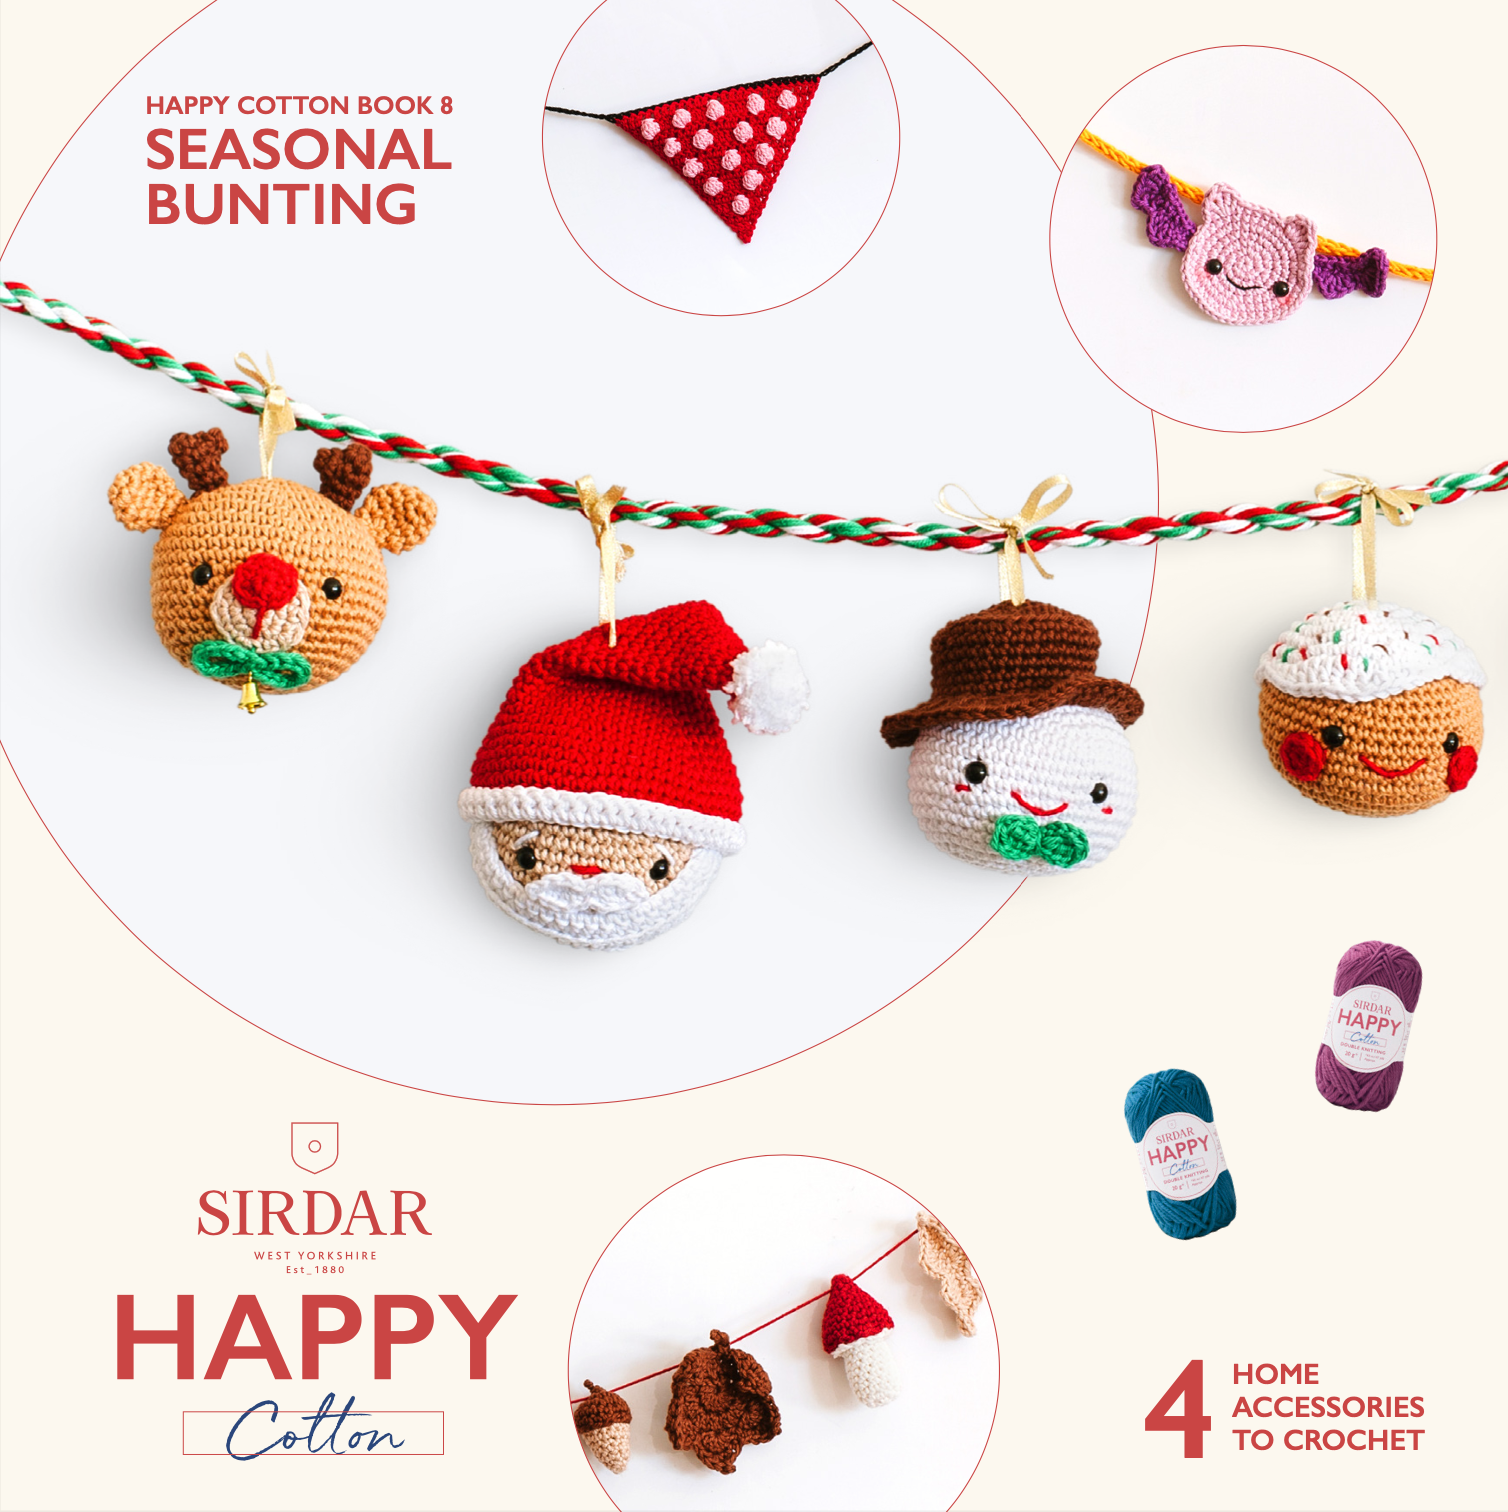 Sirdar Happy Cotton Book 8 Seasonal Bunting (free download) product image